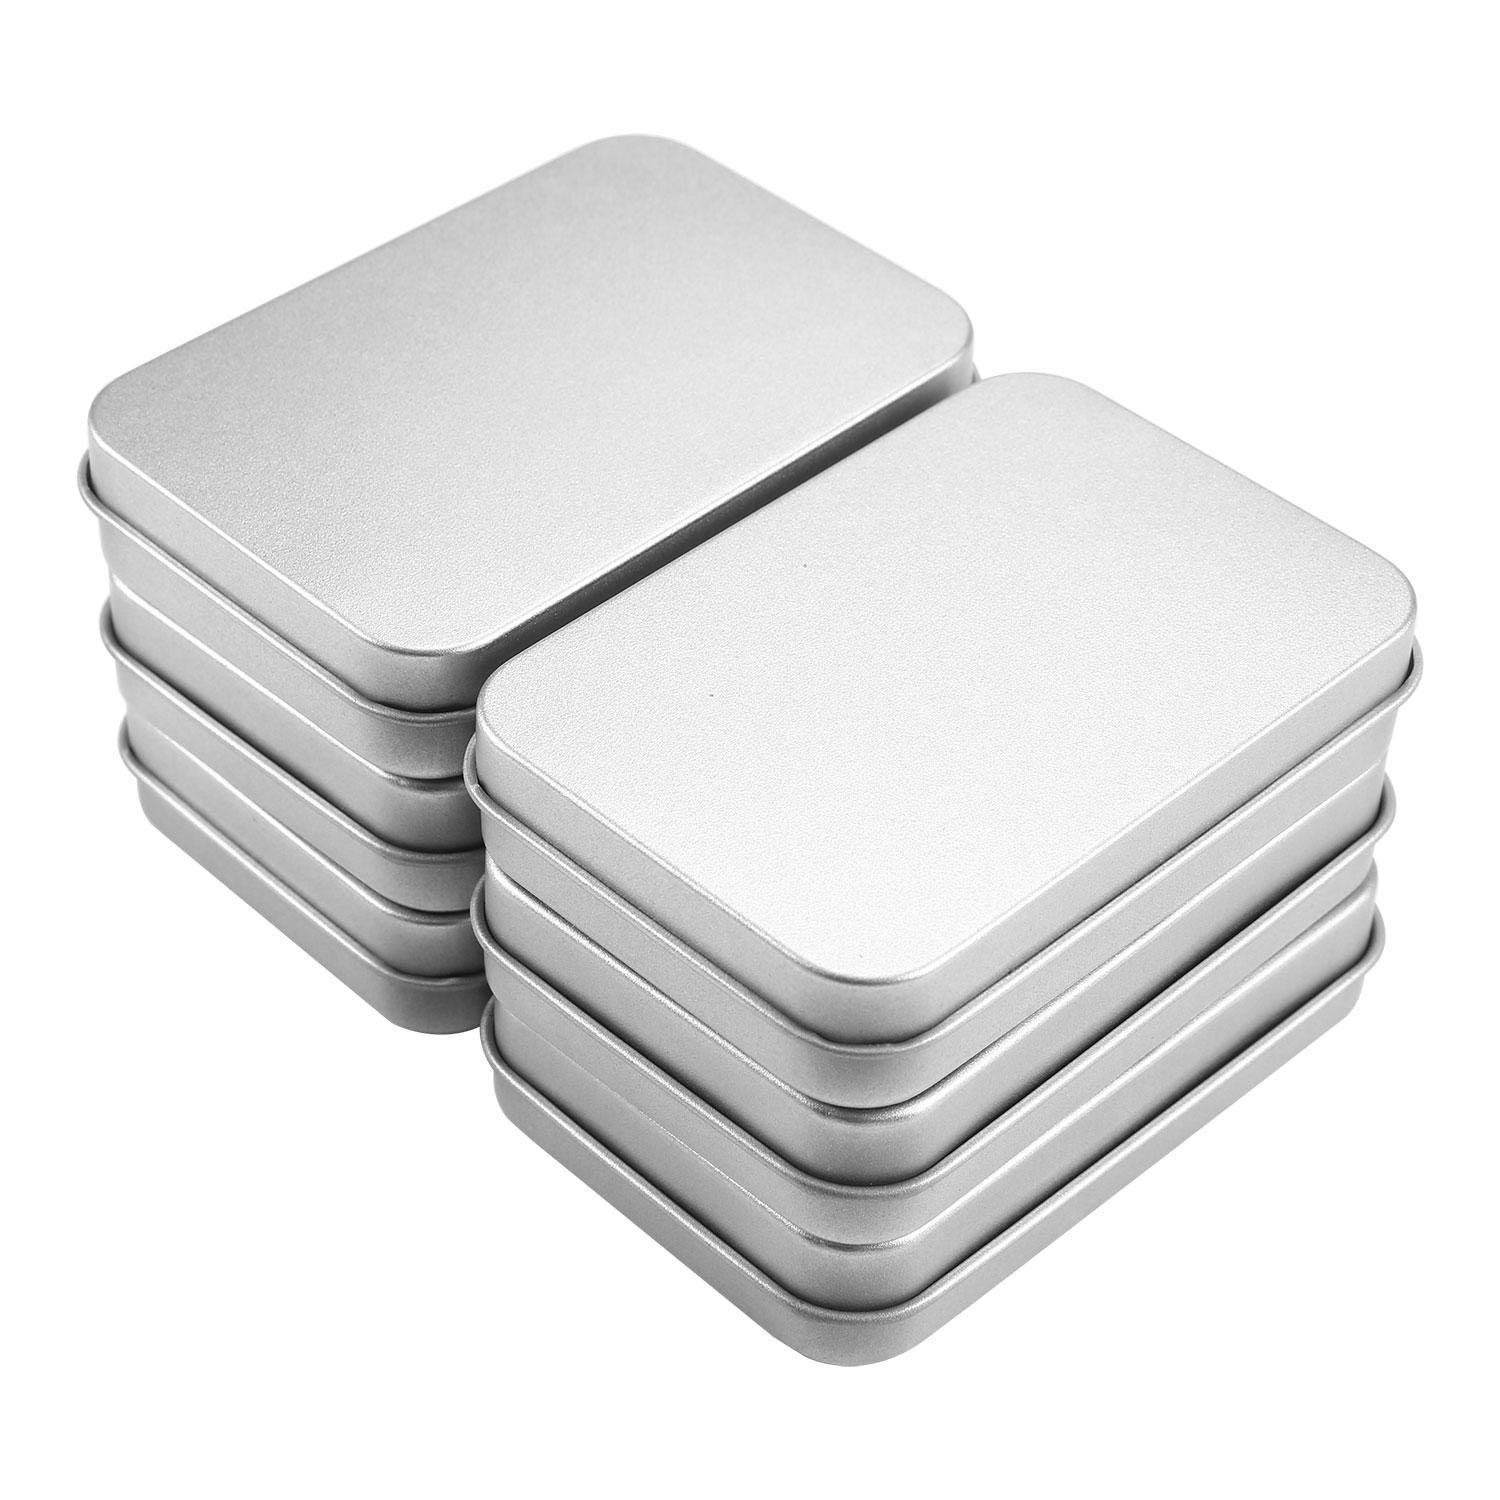 Aolvo Silver Metal Frosted Rectangular Box Empty Hinged Tins Box Containers with Lids Basic Necessities Mini Portable Case Small Storage Kit Tin Holders Set, 3.75x2.45x0.8 Inch,6pcs